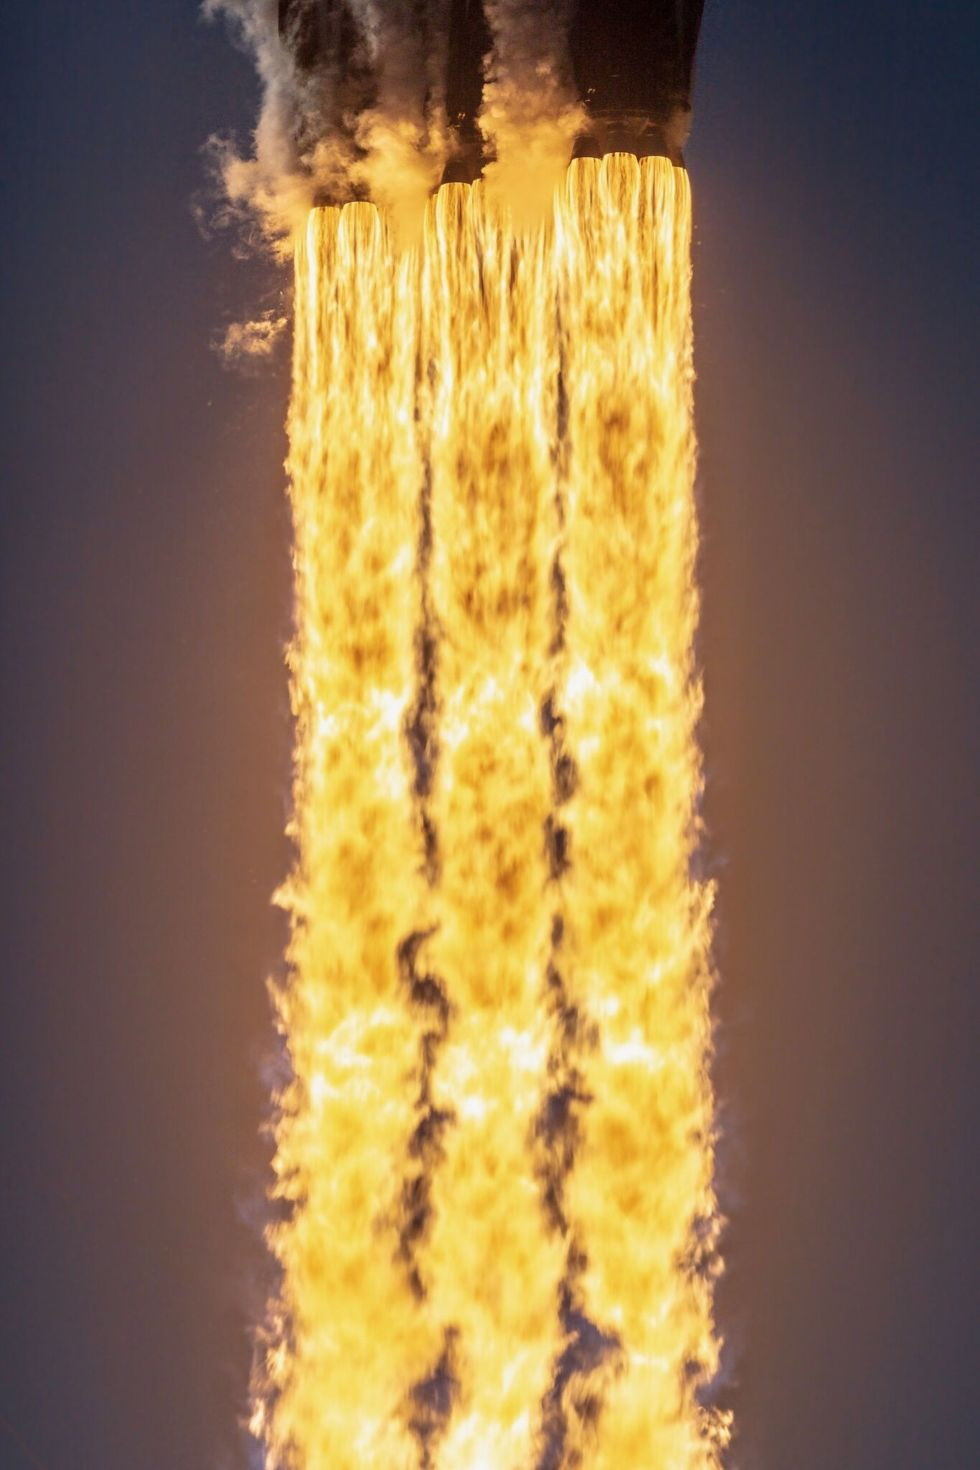 The Falcon Heavy fires its 27 engines on the way to space.